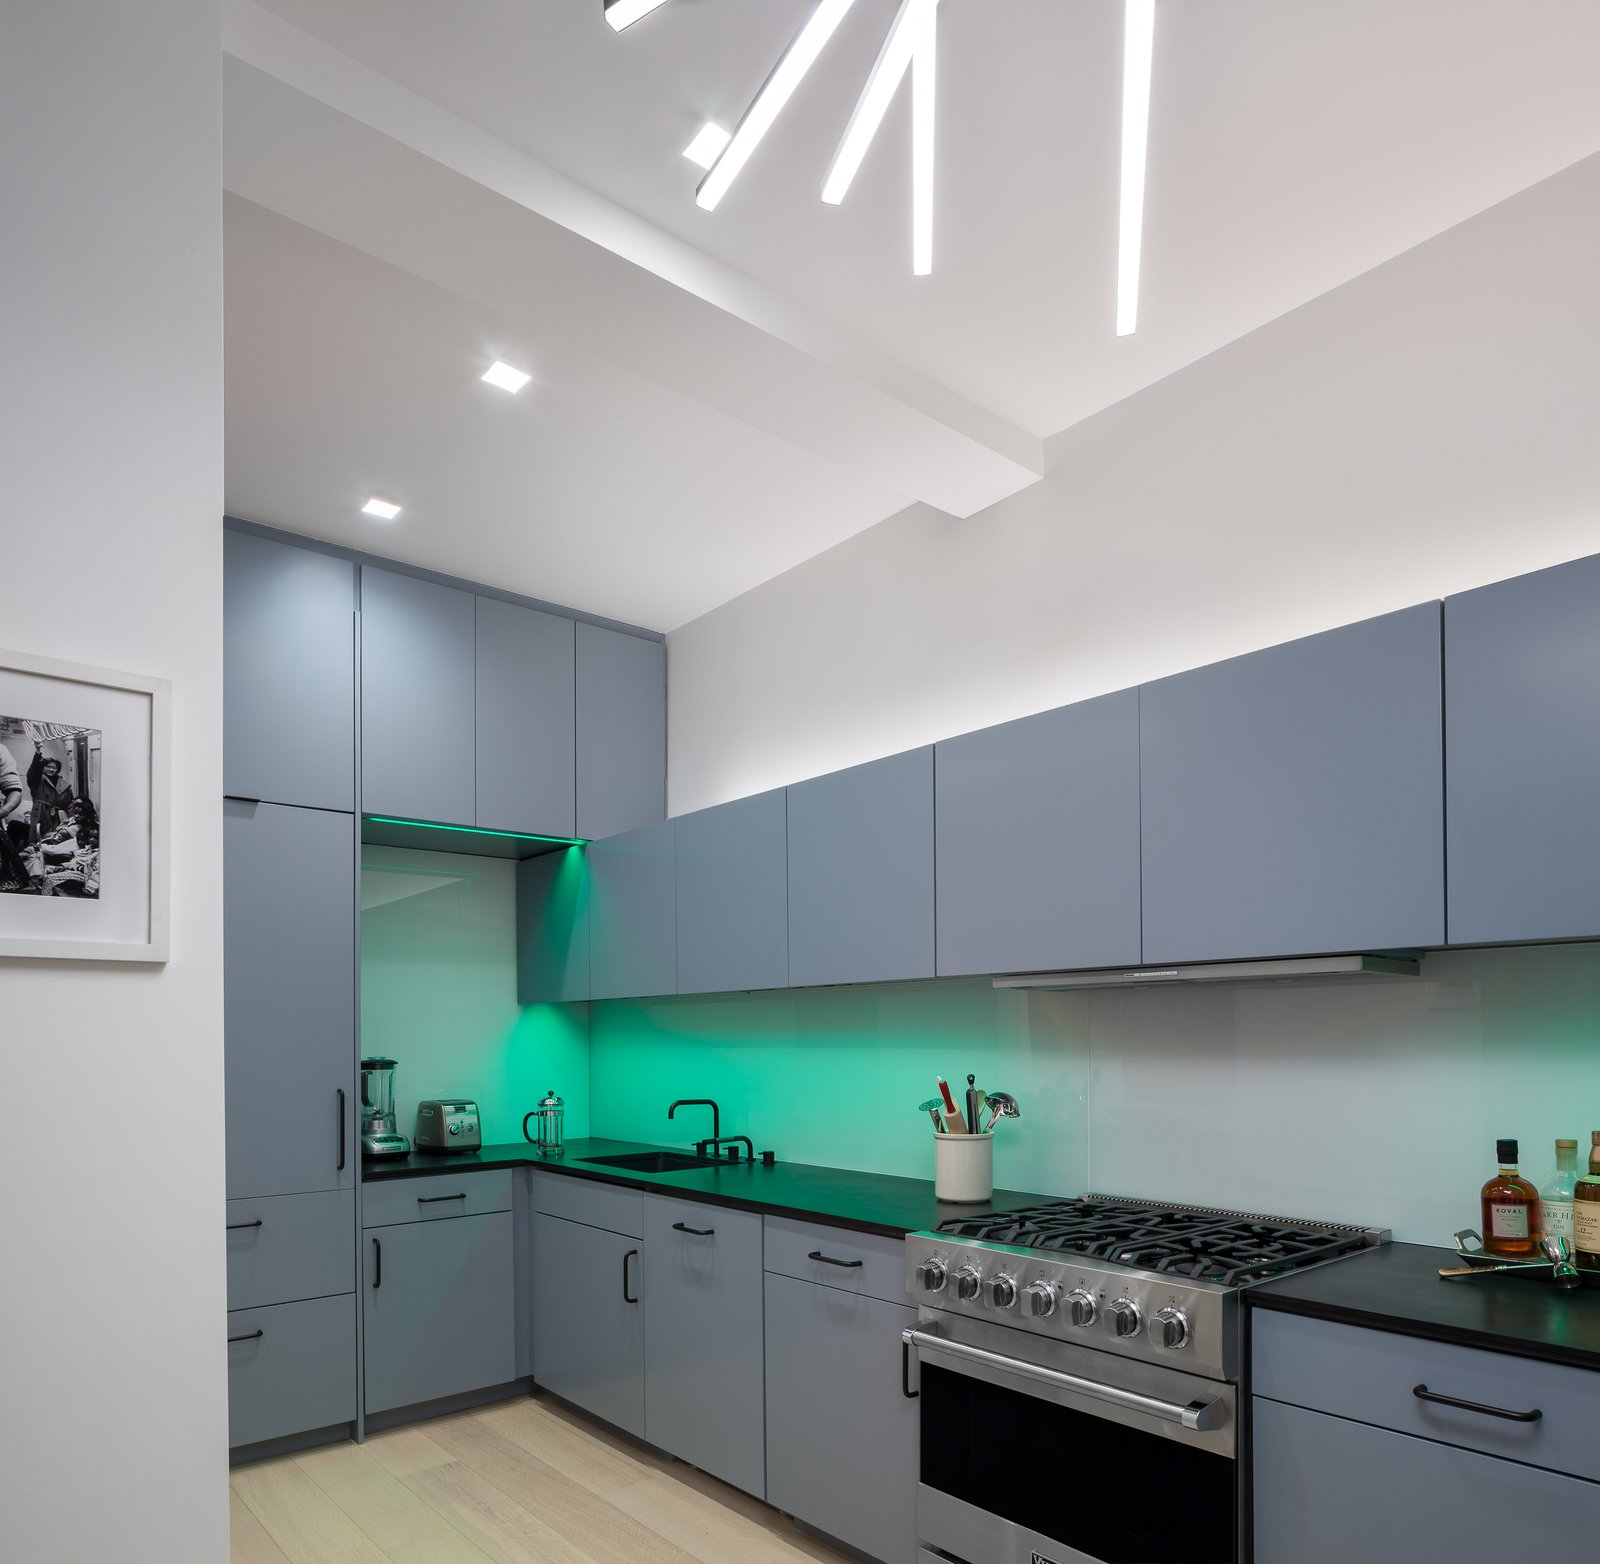 Undermount Lighting For Kitchen Cabinets: Art And Light By Andrew Mikhael Architect